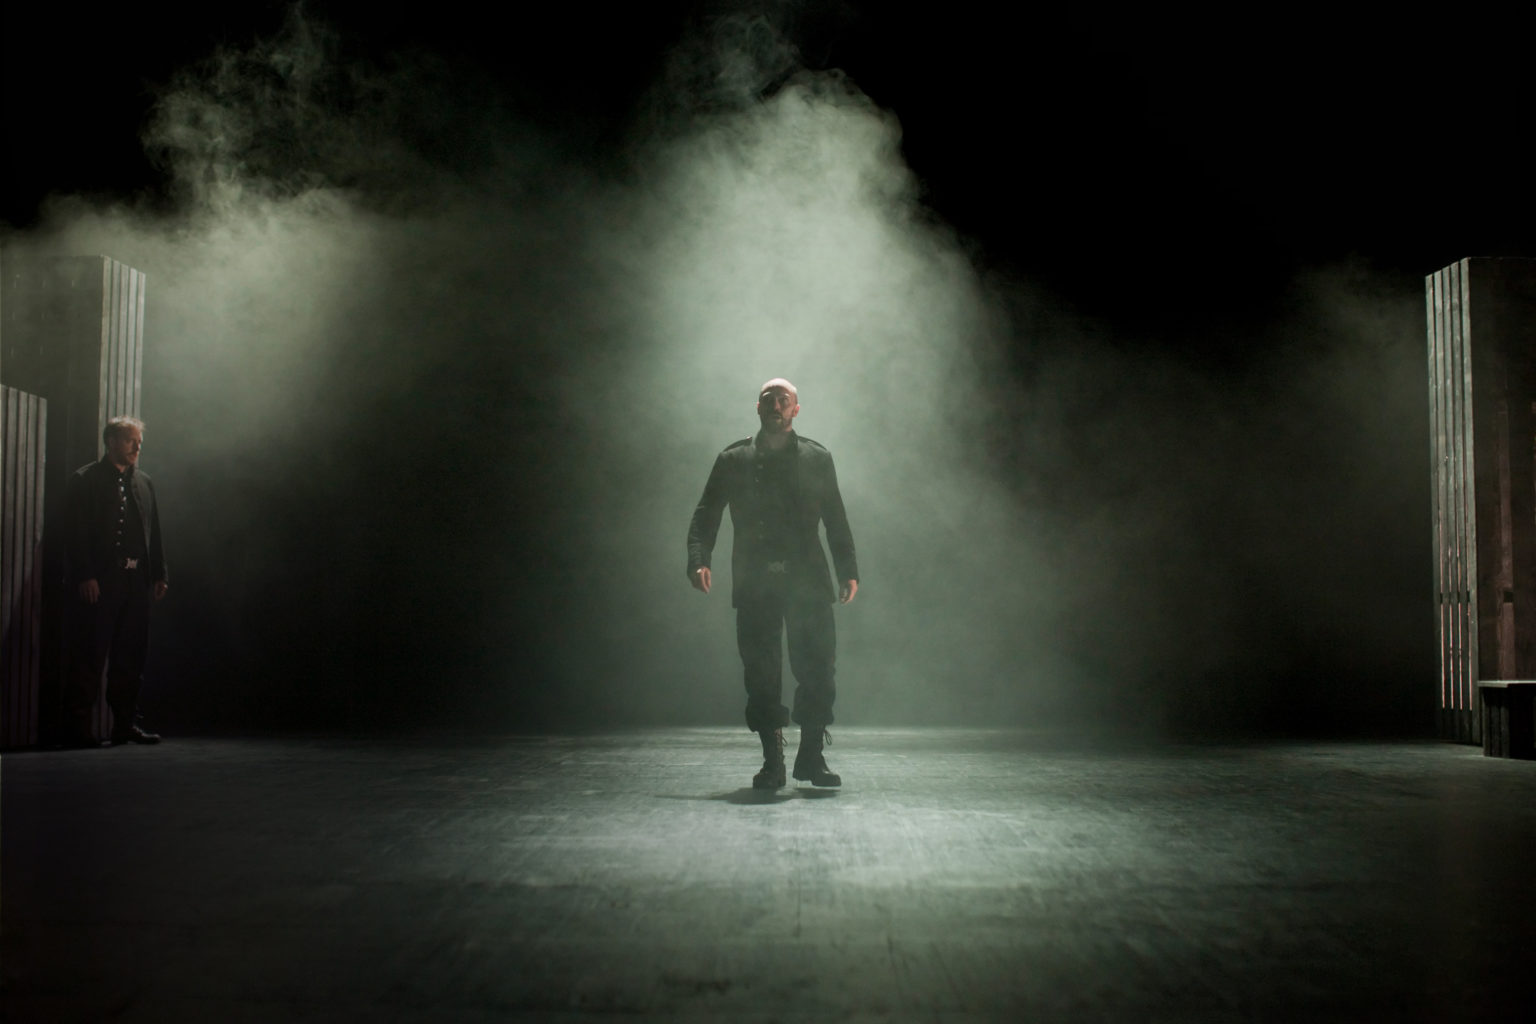 The production programme for Cheek by Jowl's production of Macbeth, 2010